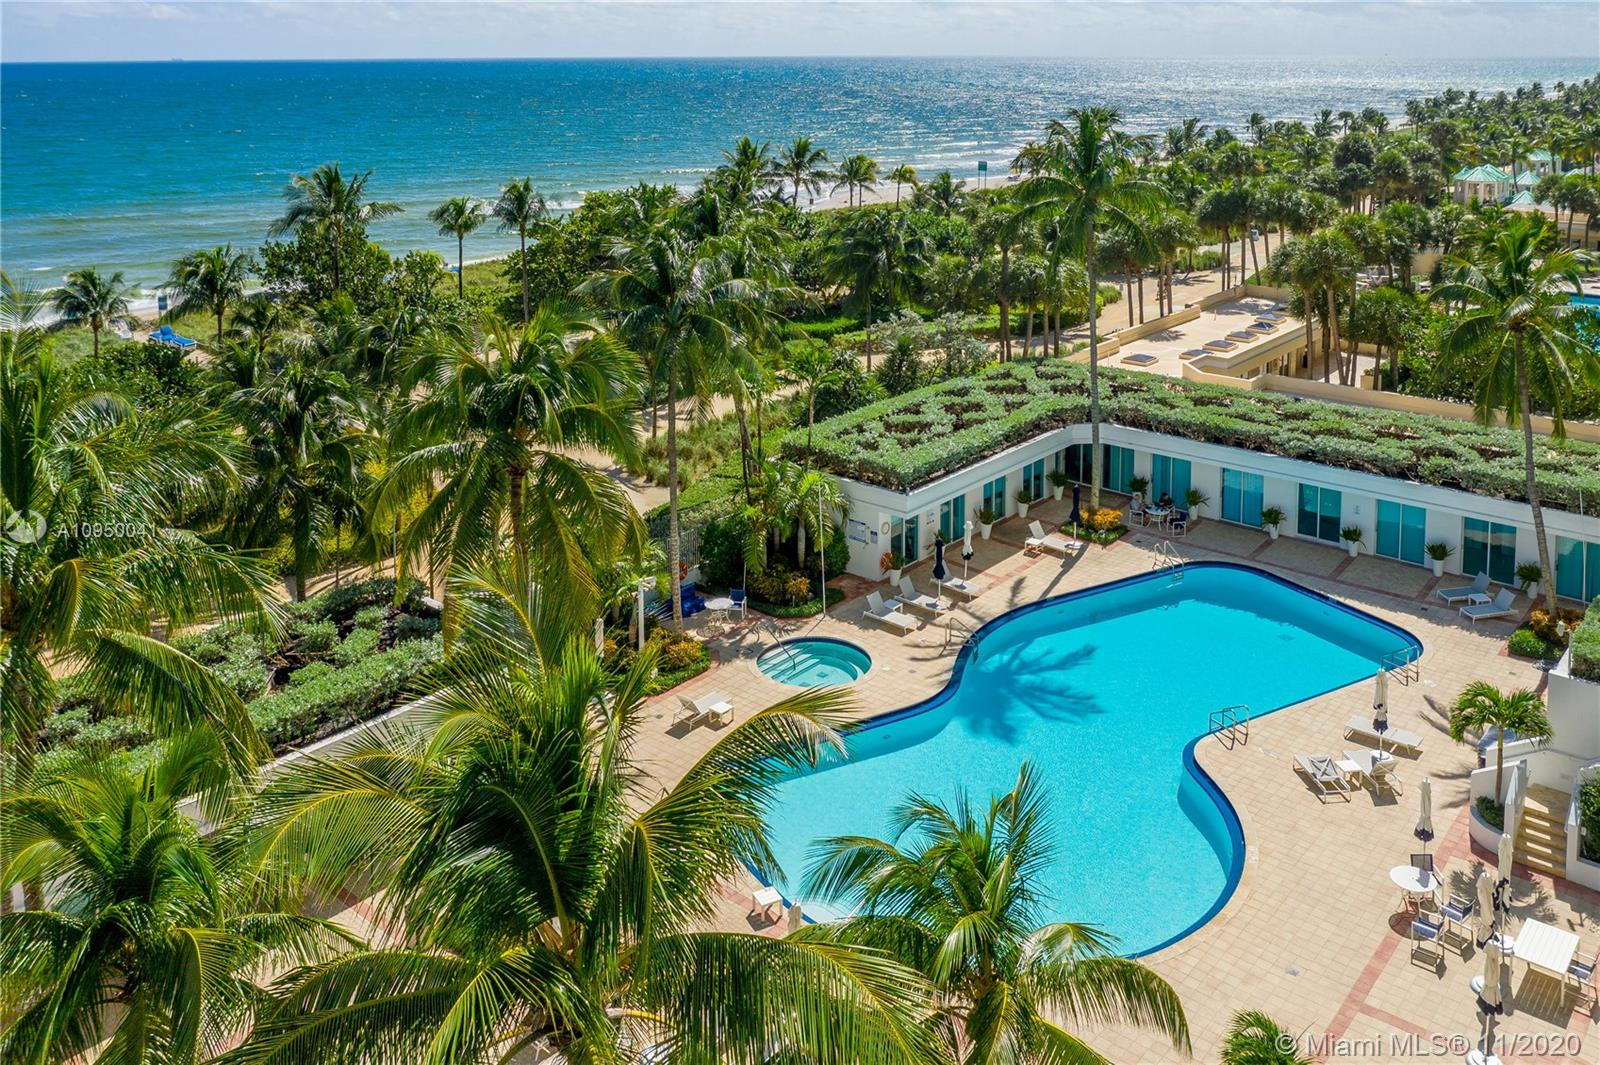 Palace at Bal Harbour image #40